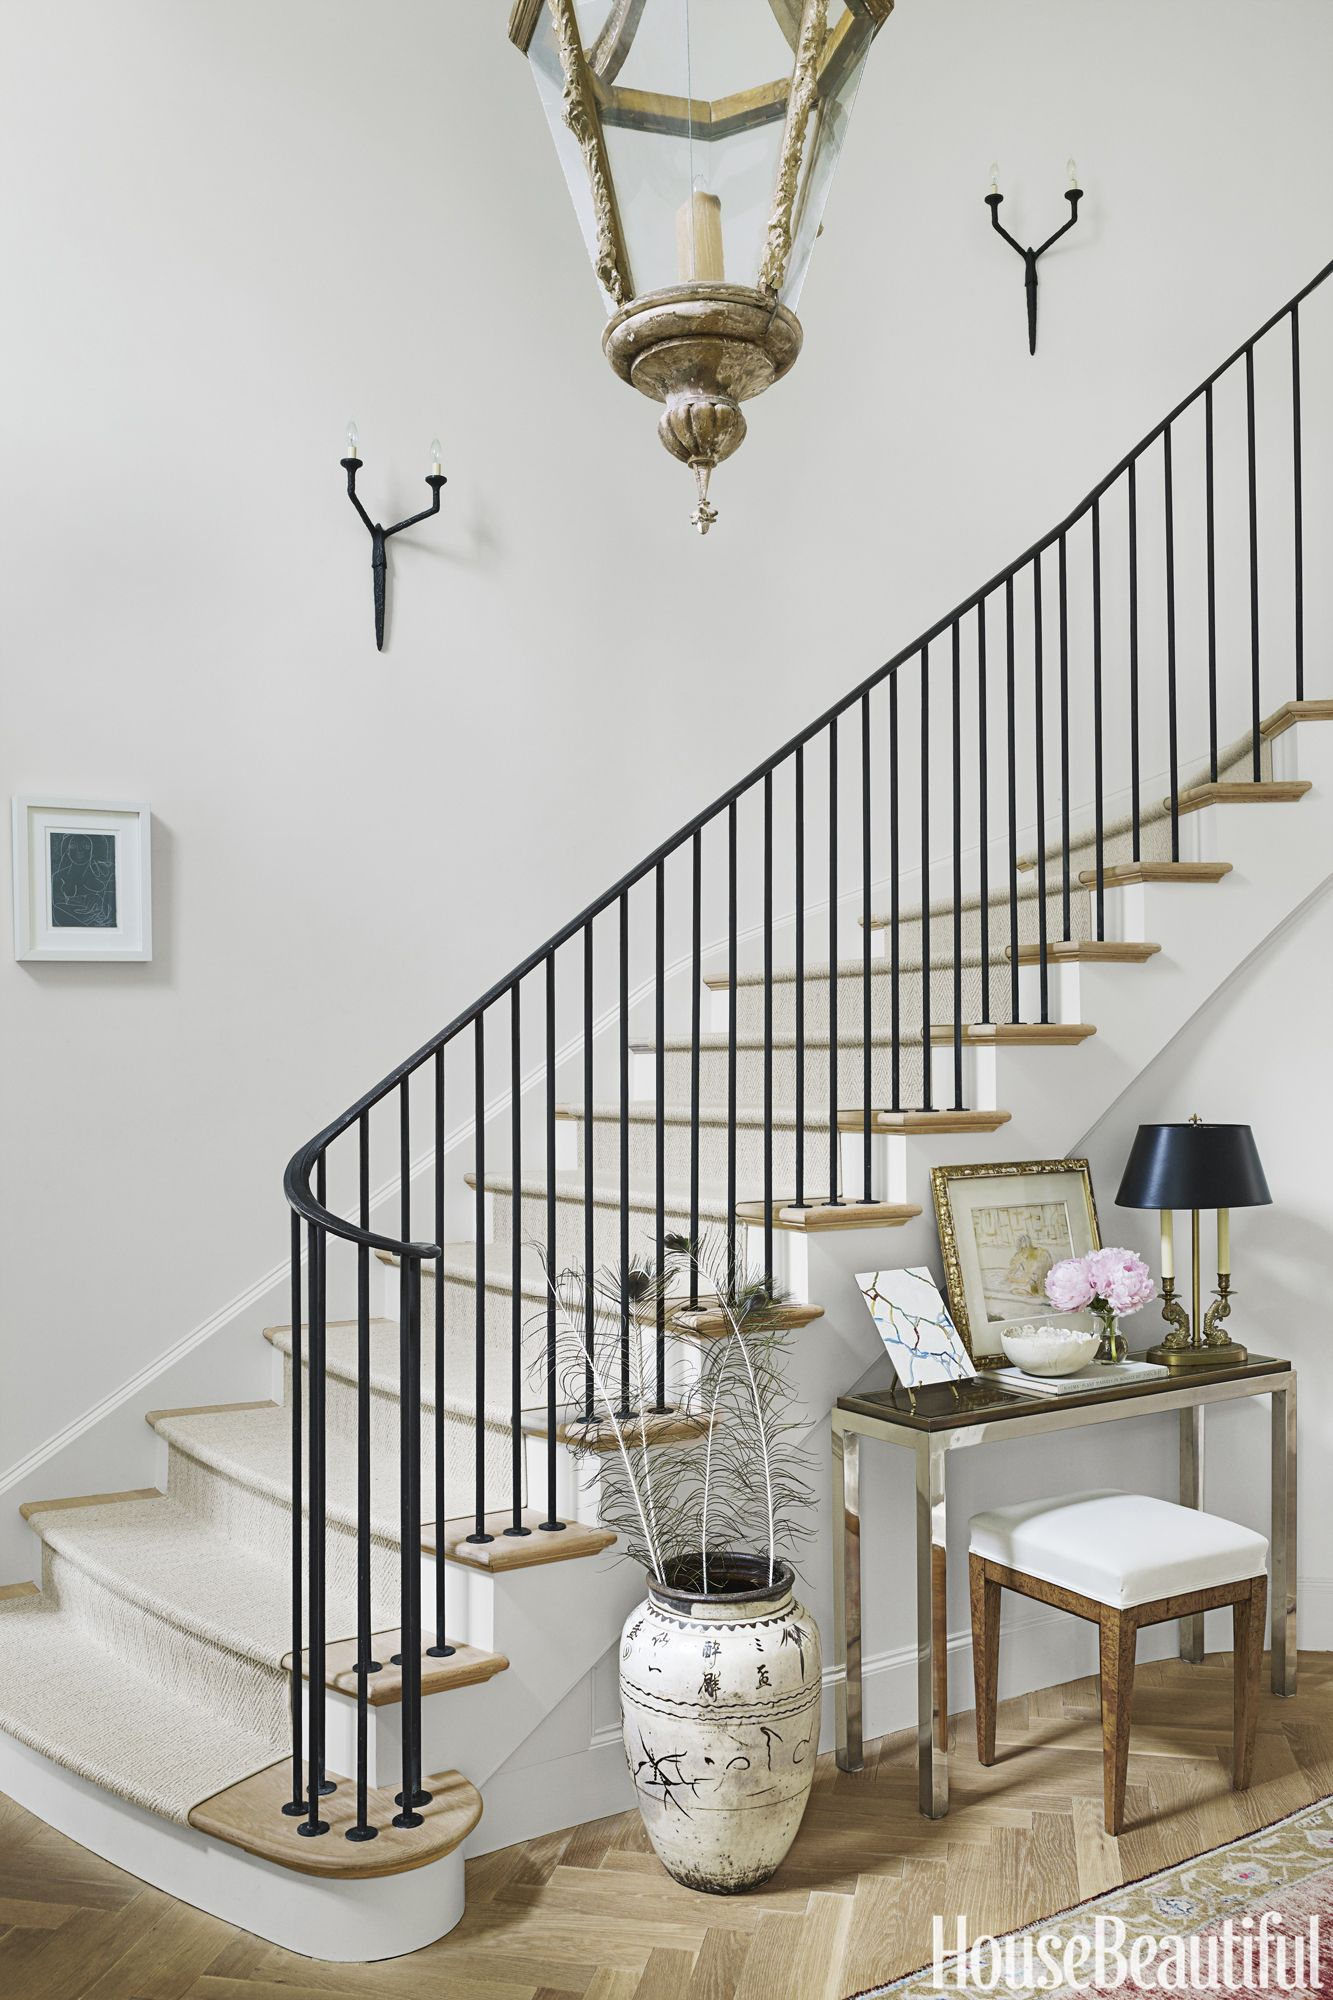 Fantastic Foyer Ideas To Make The Perfect First Impression: 75+ Foyer Decorating Ideas